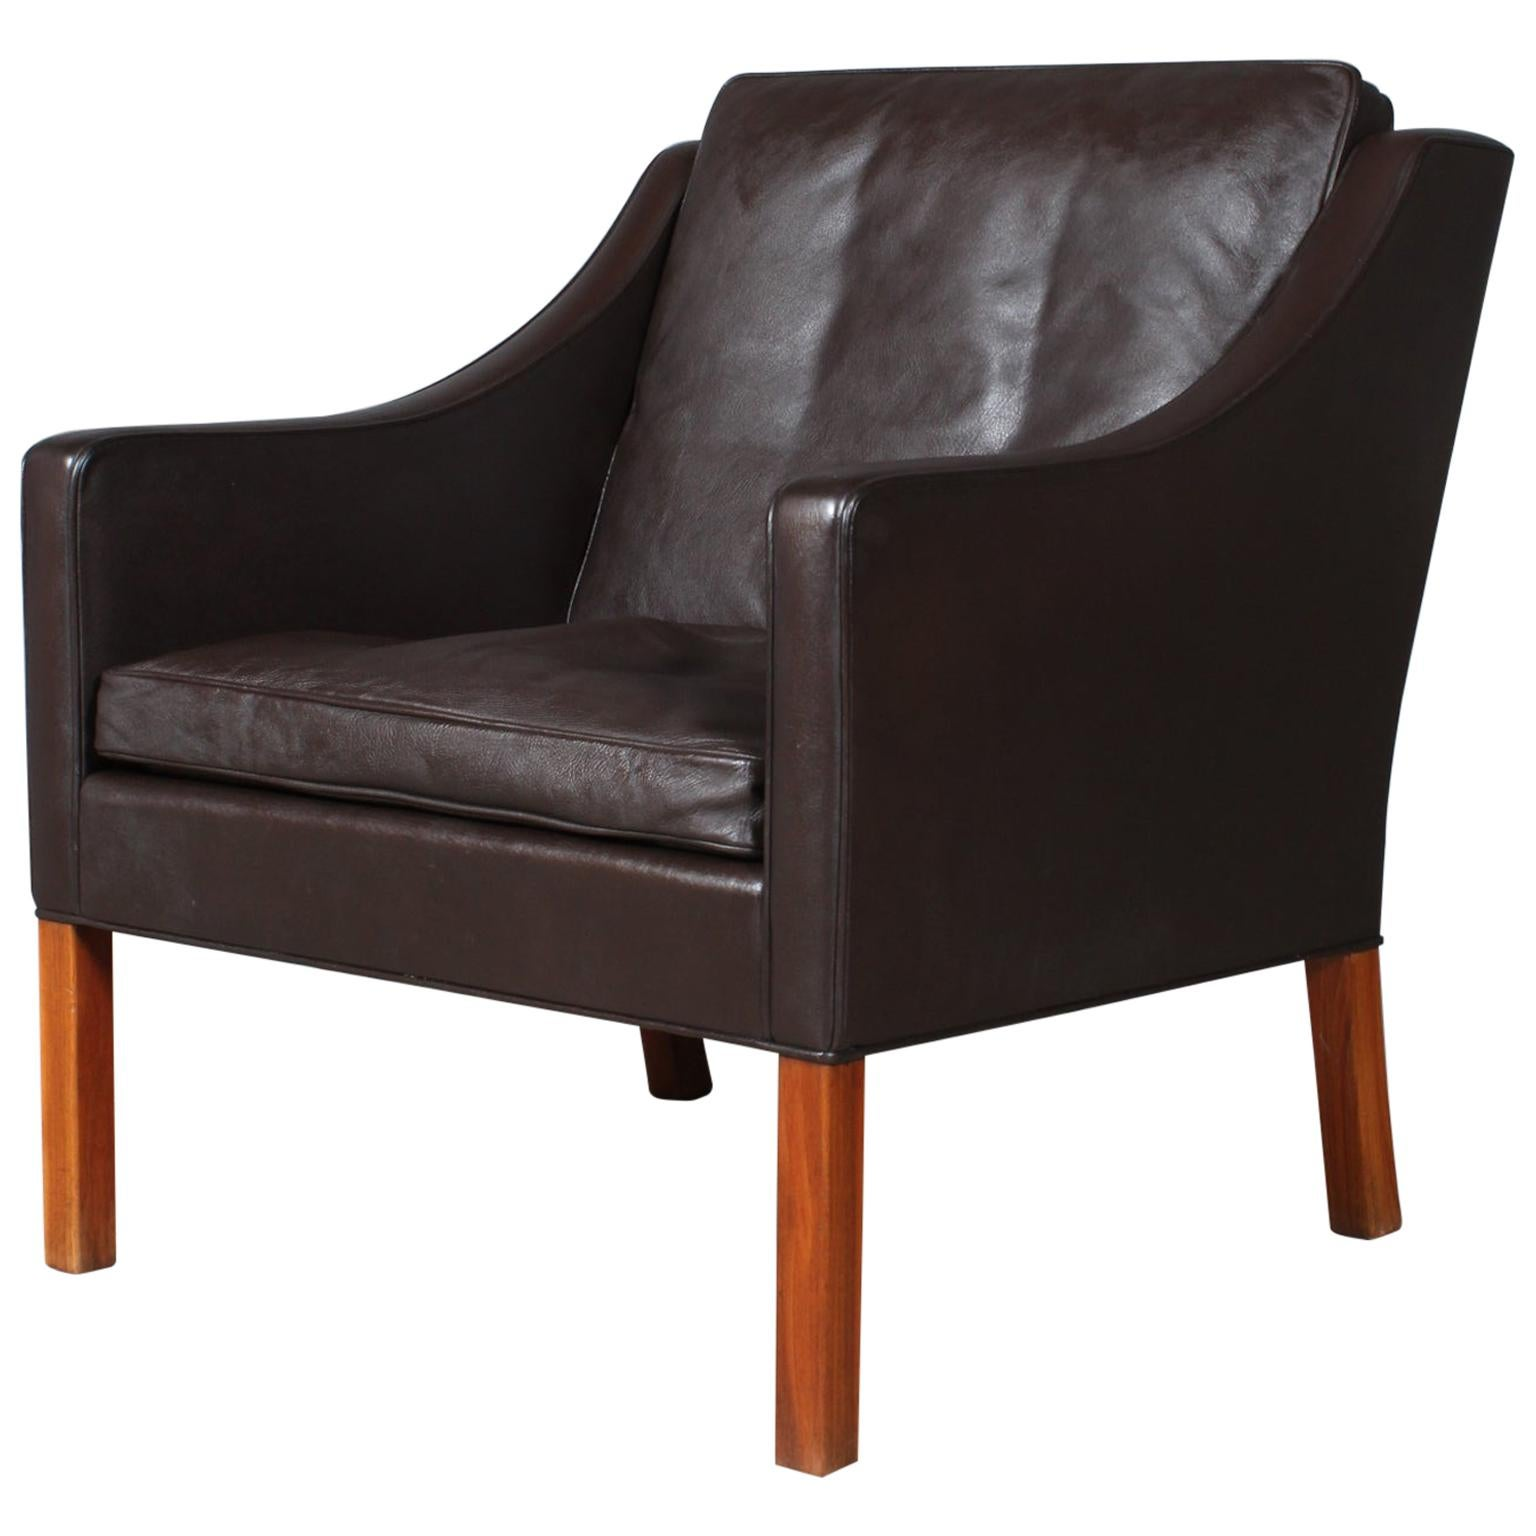 Model 2207 Lounge Chair